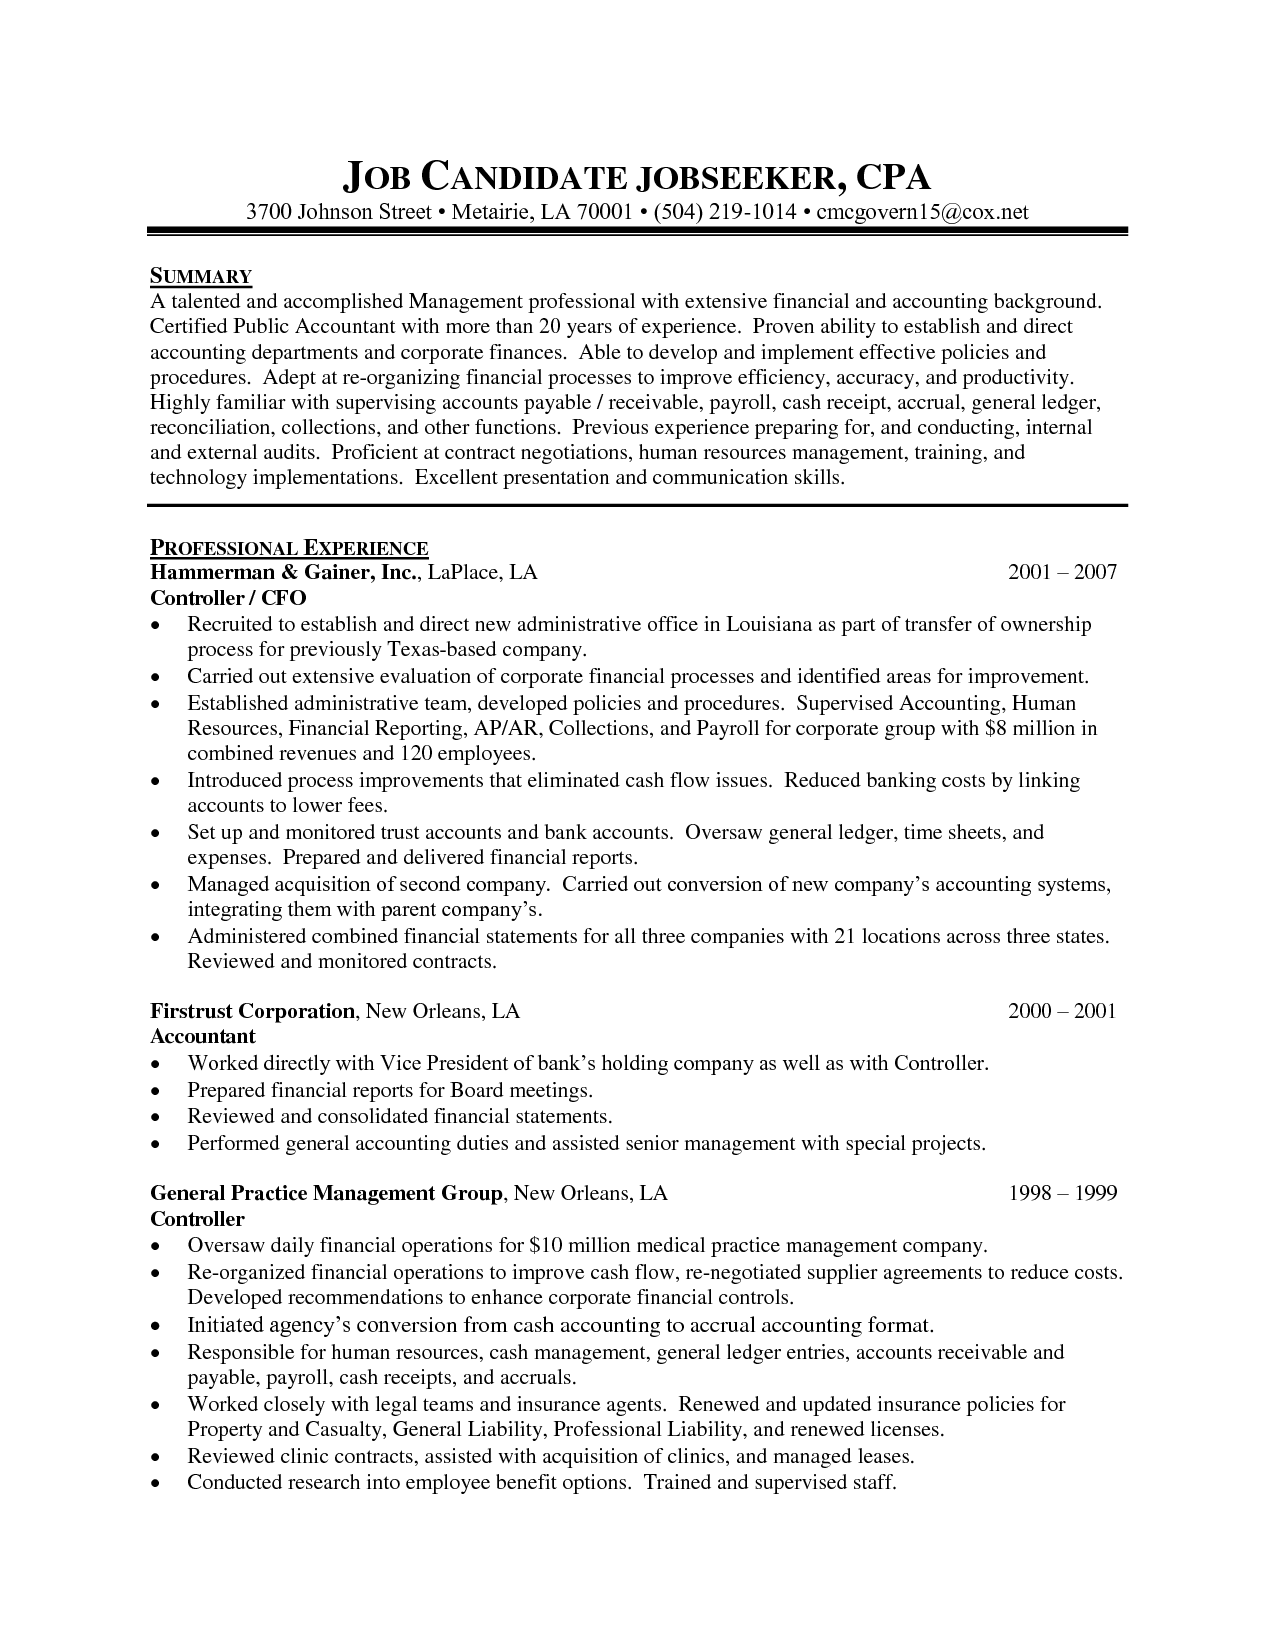 Cpa Resumeregularmidwesterners Regularmidwesterners Within Staff Accountant  Resume Sample Samples Across All Industries  Accountant Resume Template